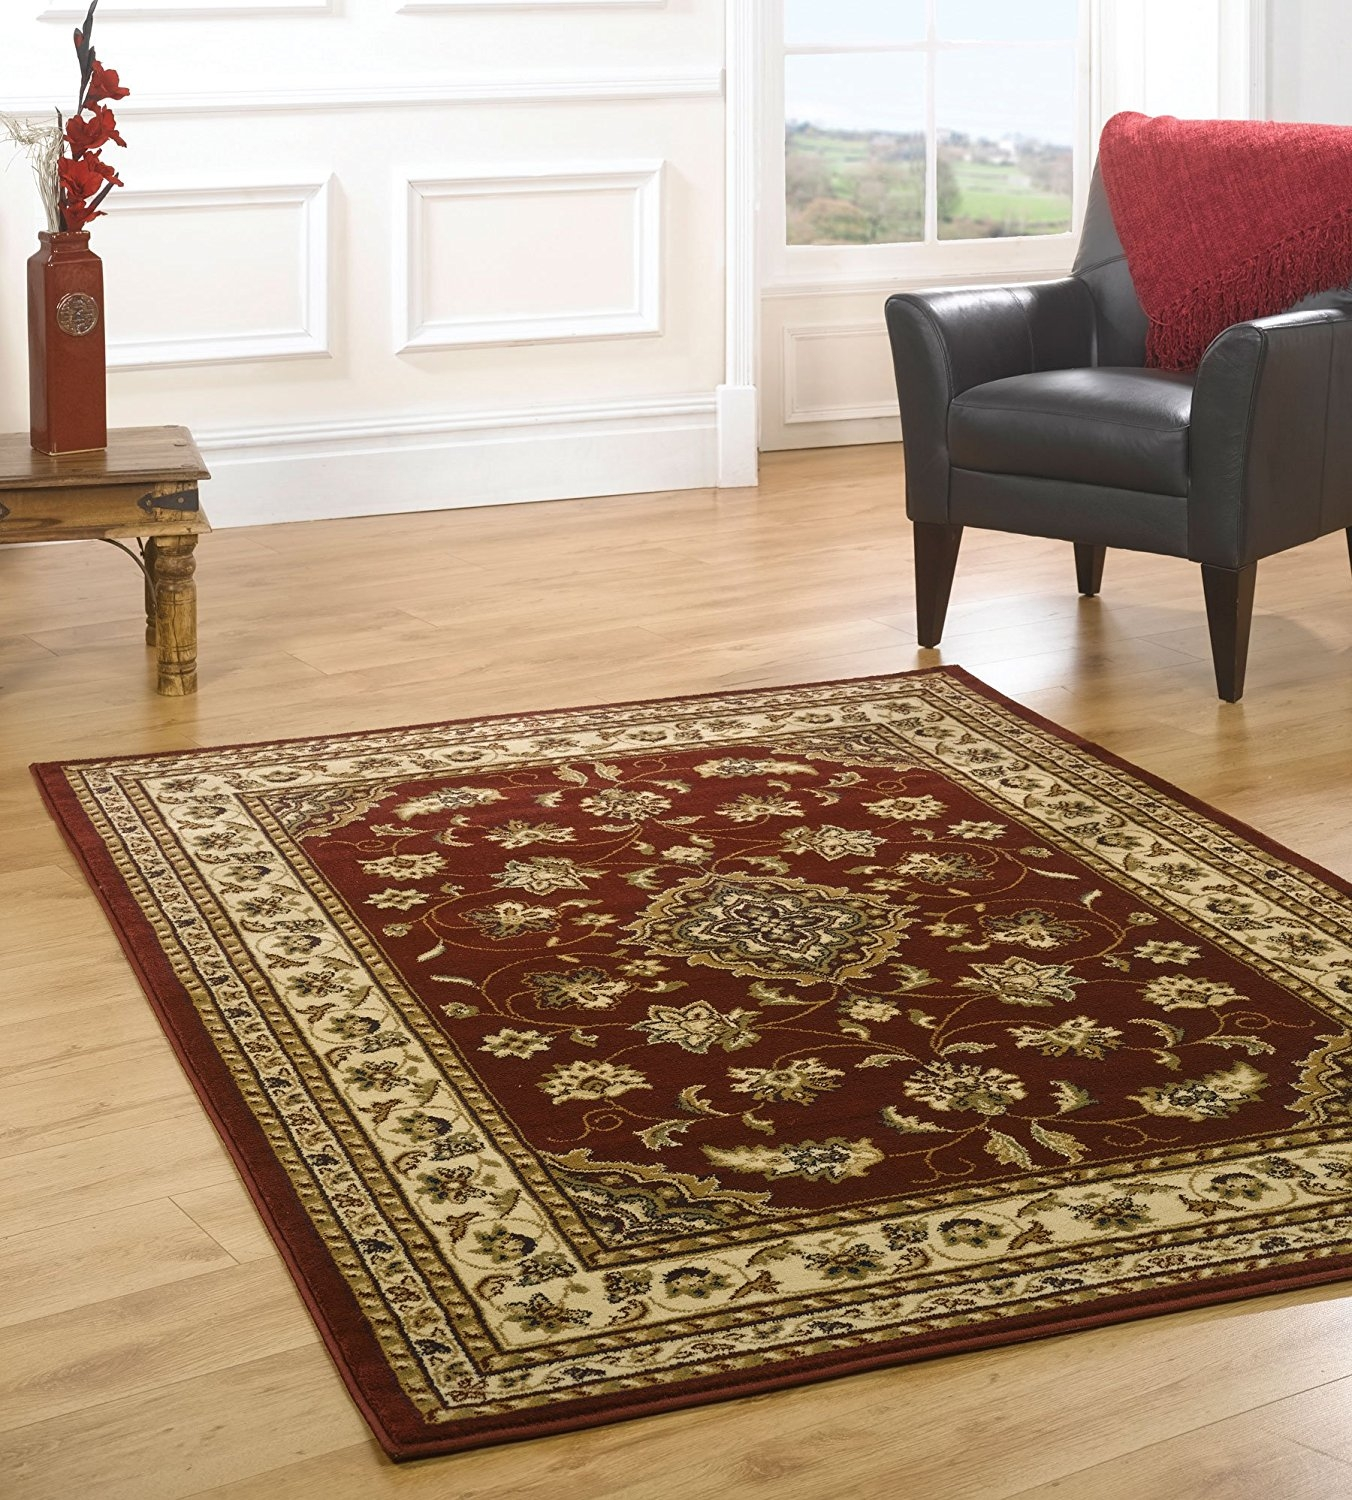 15 Best Collection Of Large Red Rugs